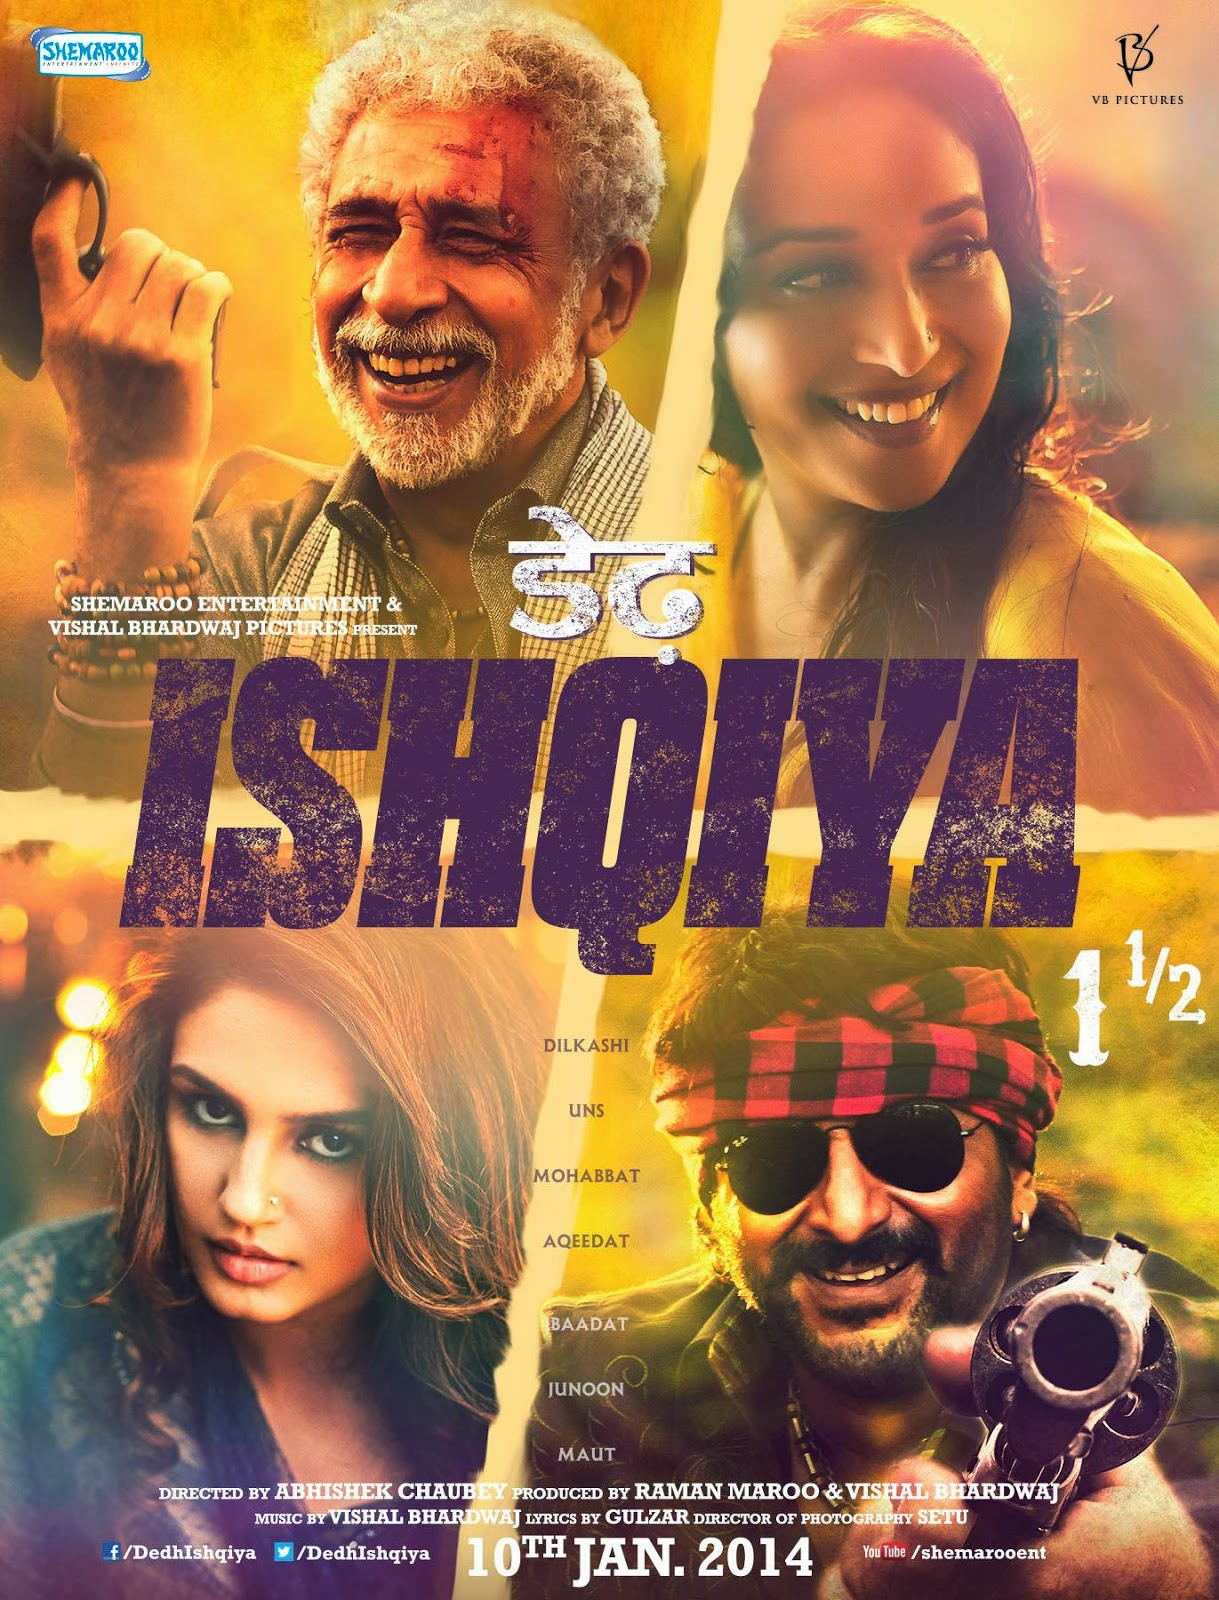 Dedh Ishqiya 2014 film wiki poster, Dedh Ishqiya bollywood film First Look Poster, wallpapers, pics Huma Qureshi, Madhuri Dixit,Arshad Warsi